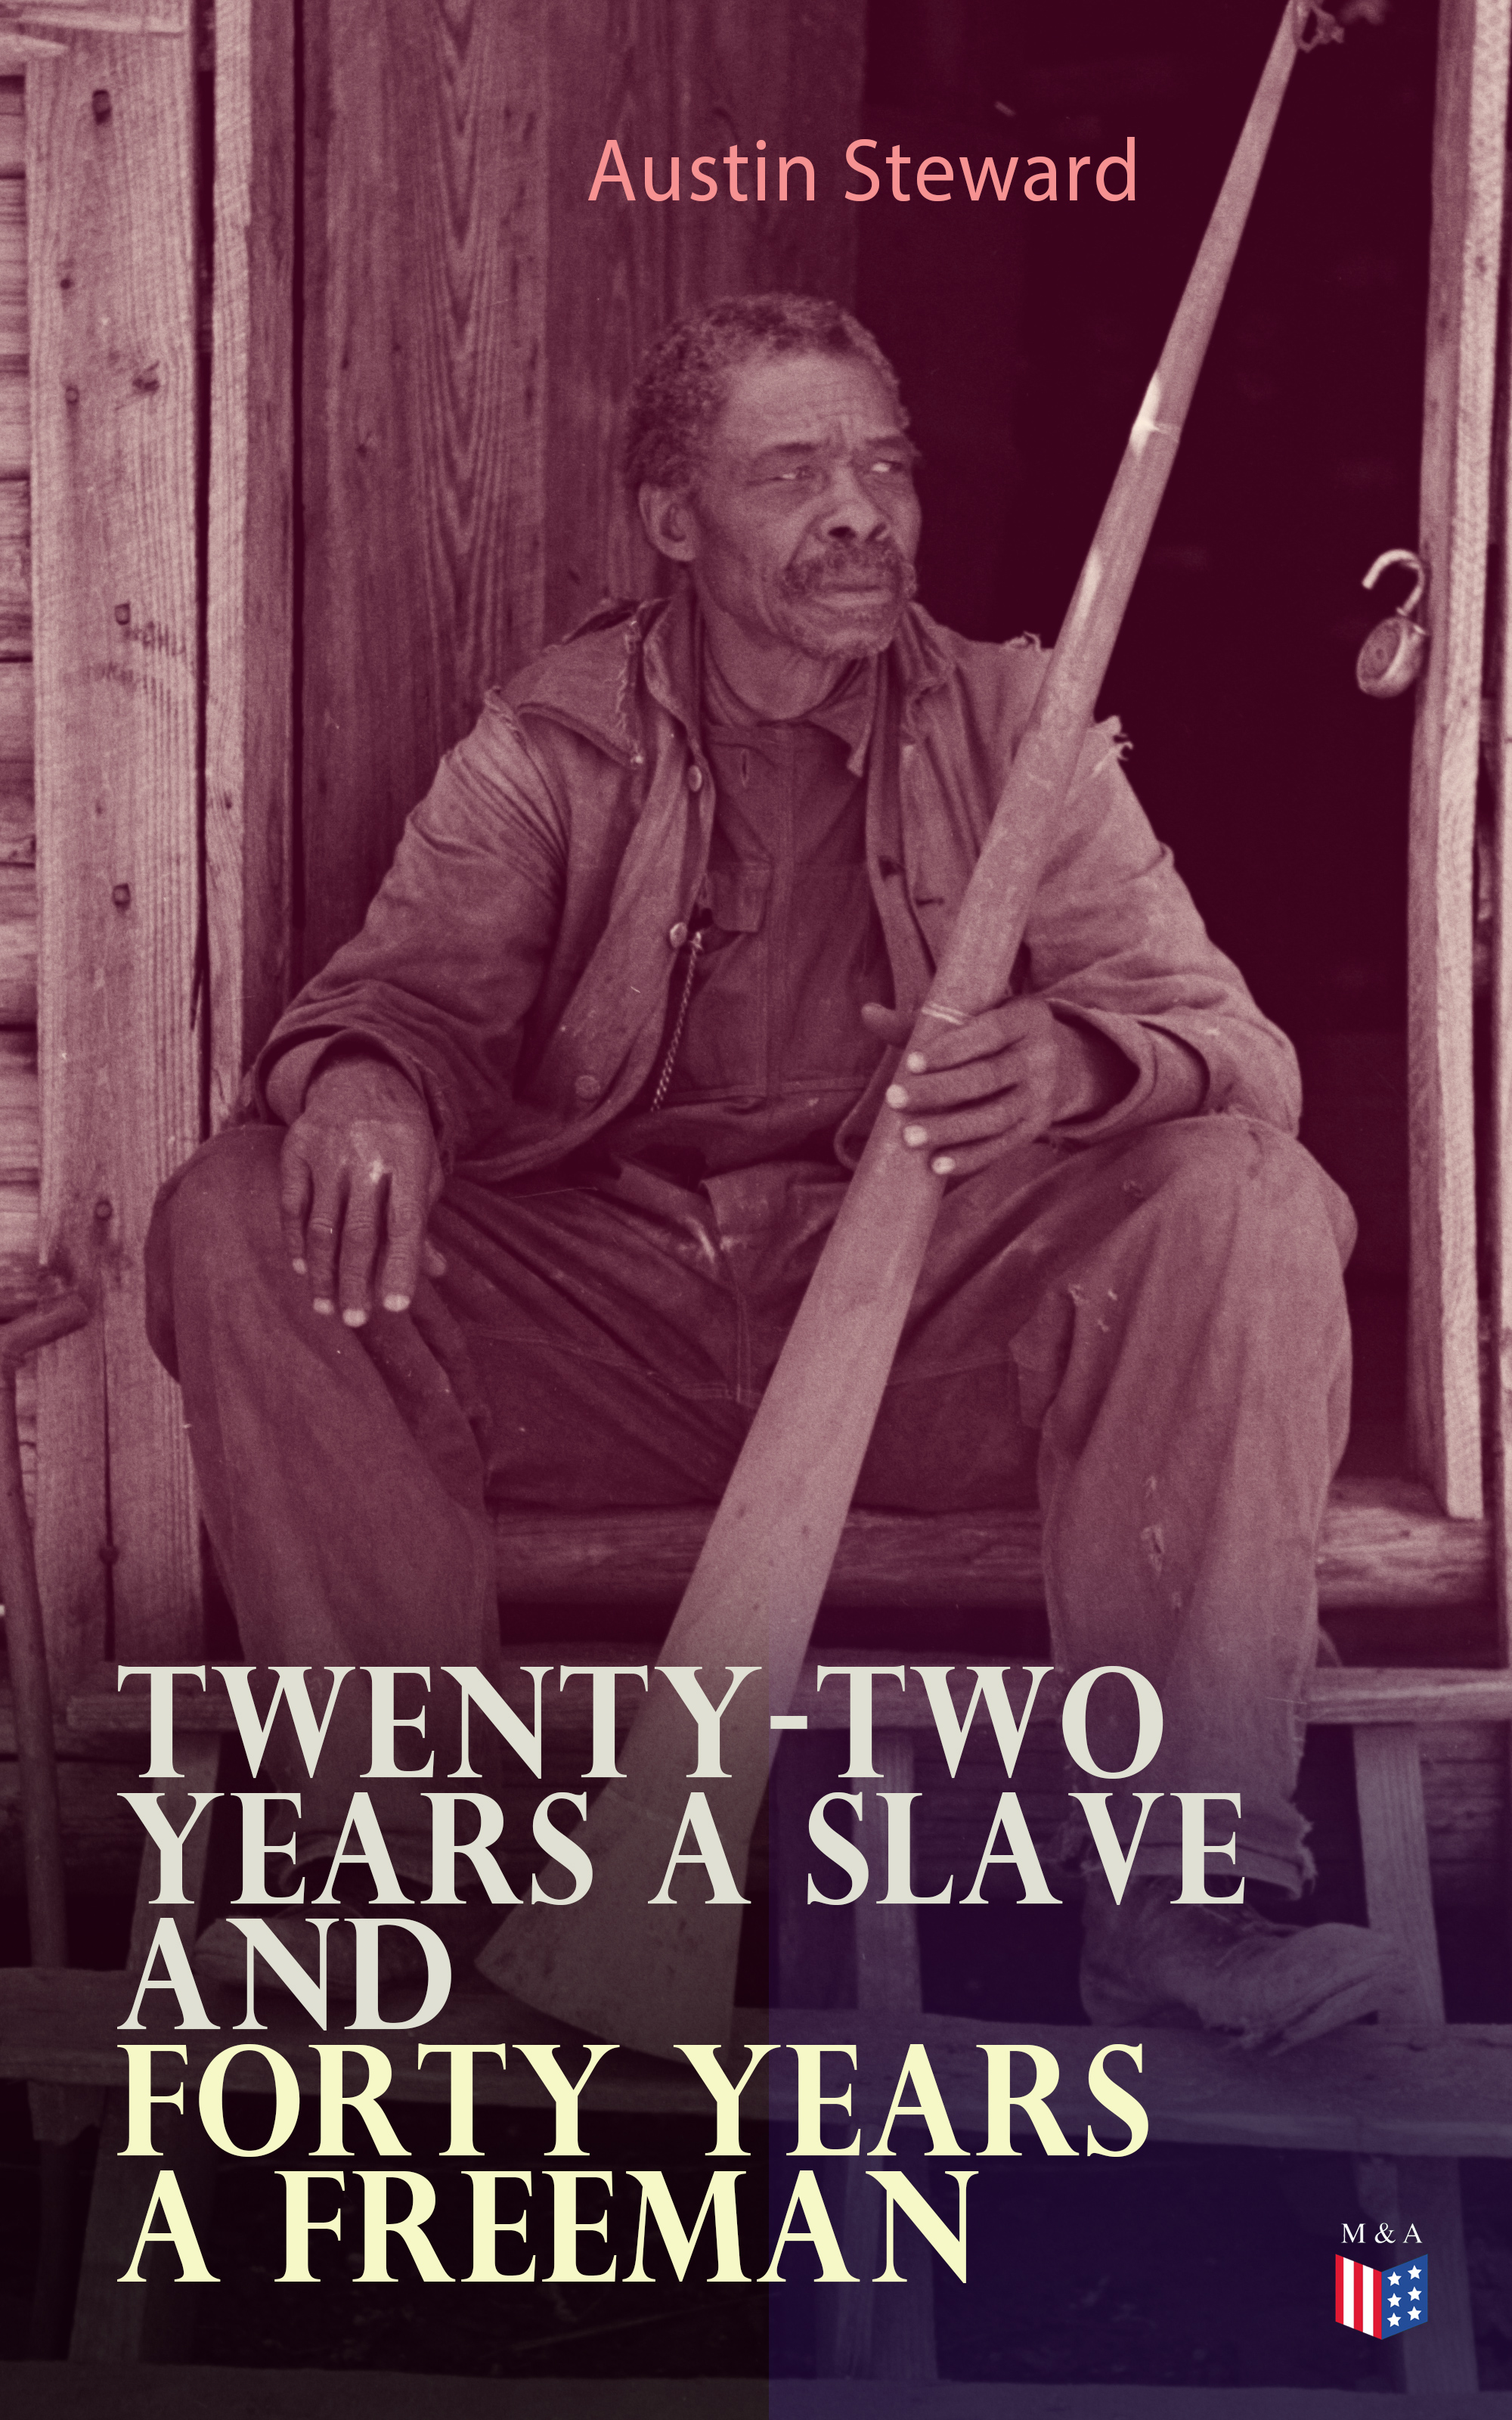 Austin Steward Twenty-Two Years a Slave and Forty Years a Freeman northup s 12 years a slave isbn 9785521054497